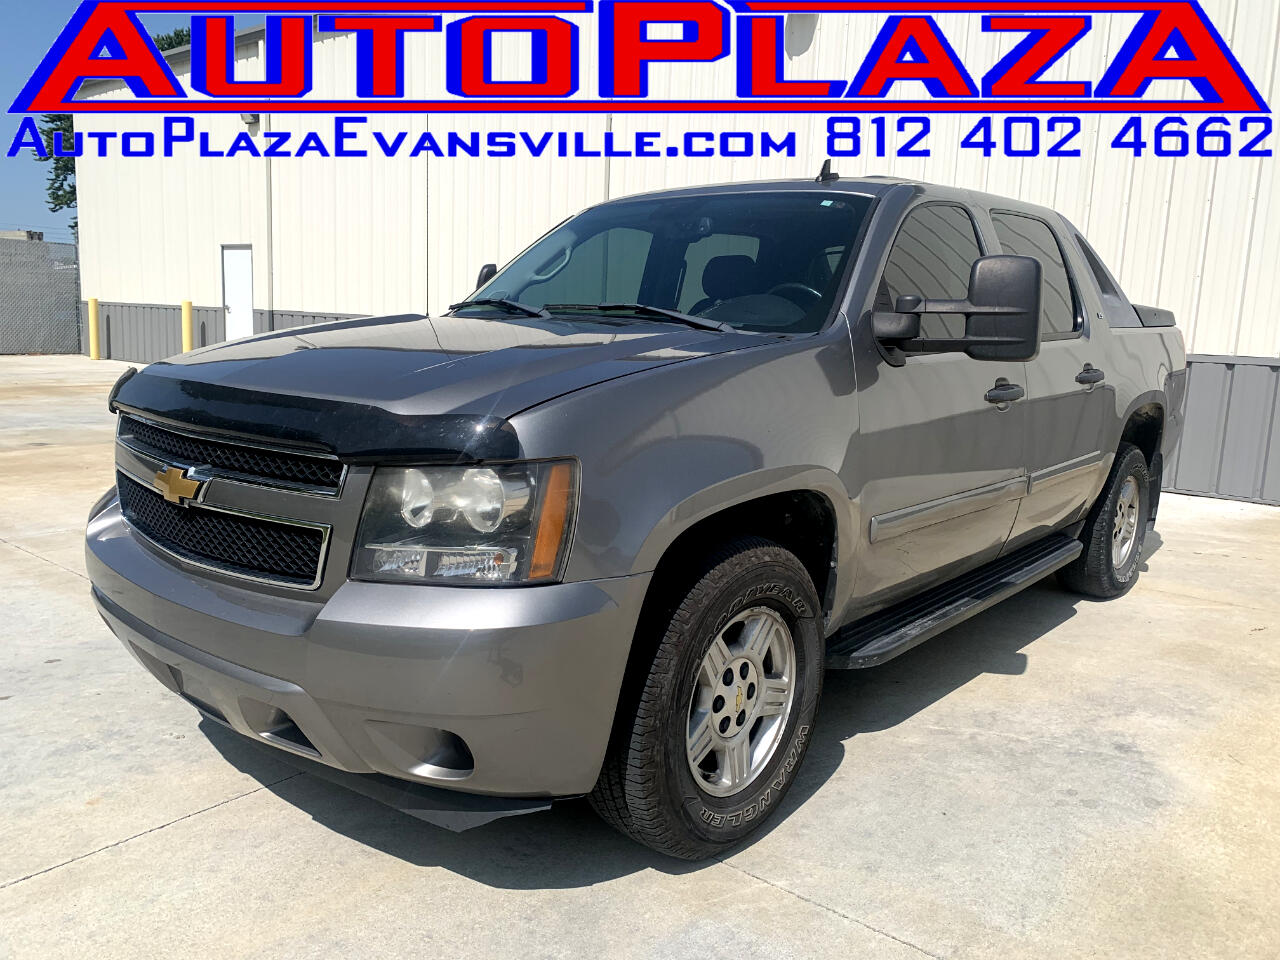 Chevrolet Avalanche LS 4WD 2008